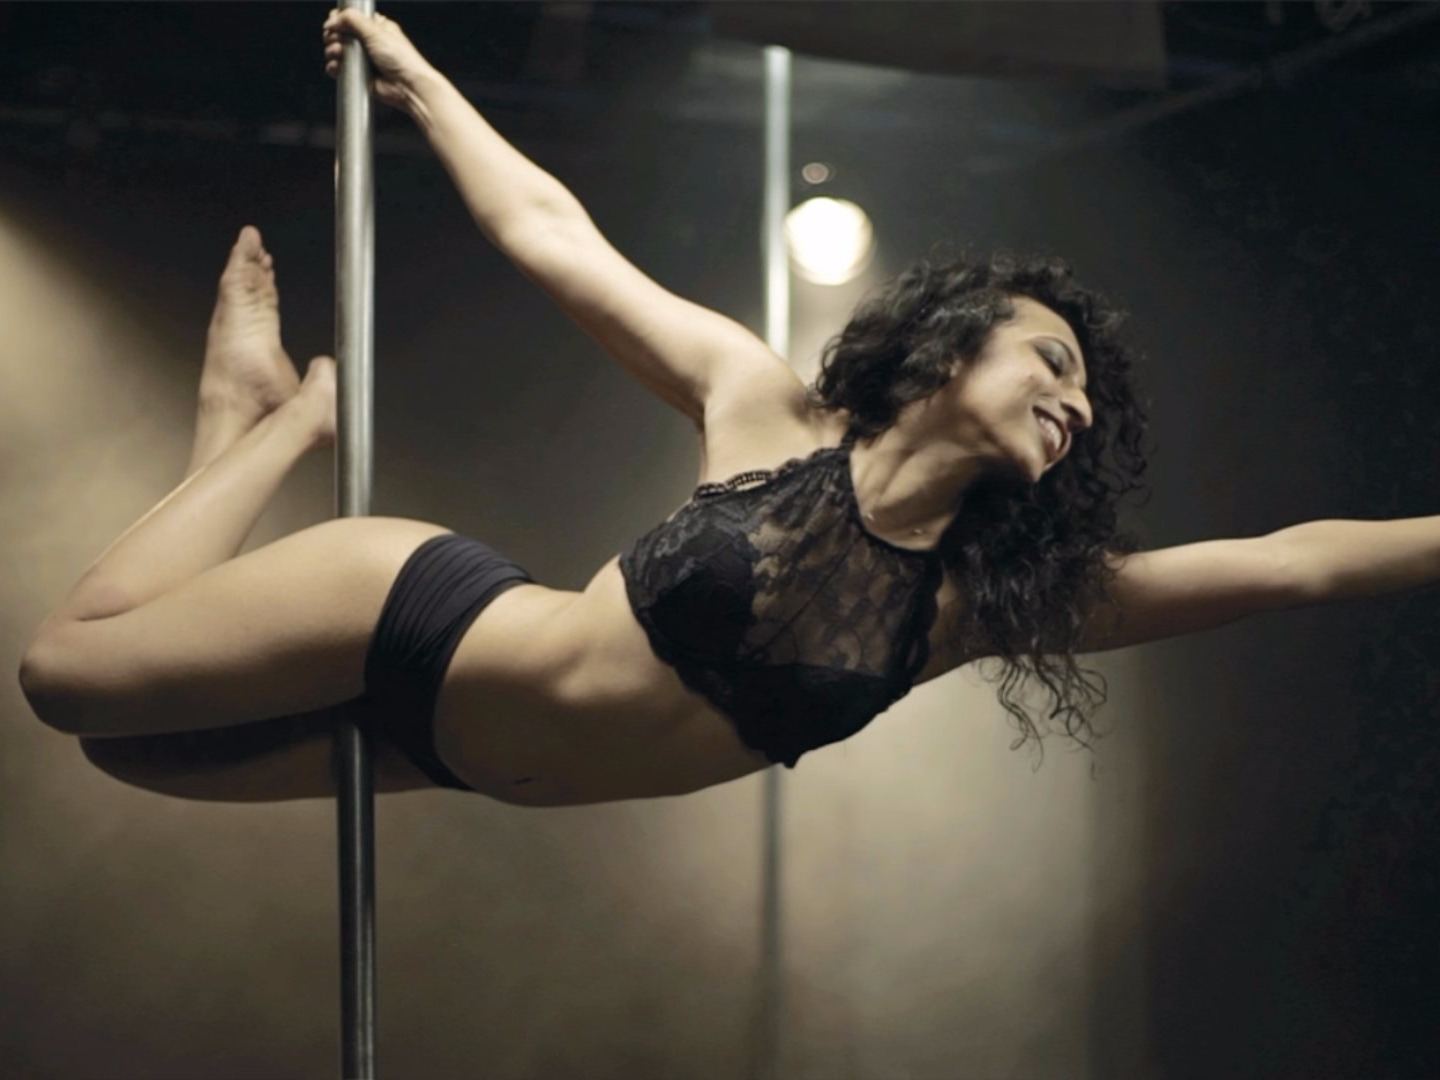 Aarifa, Indian Bohri Muslim, YouTube video by 'Blush', Pole dancing